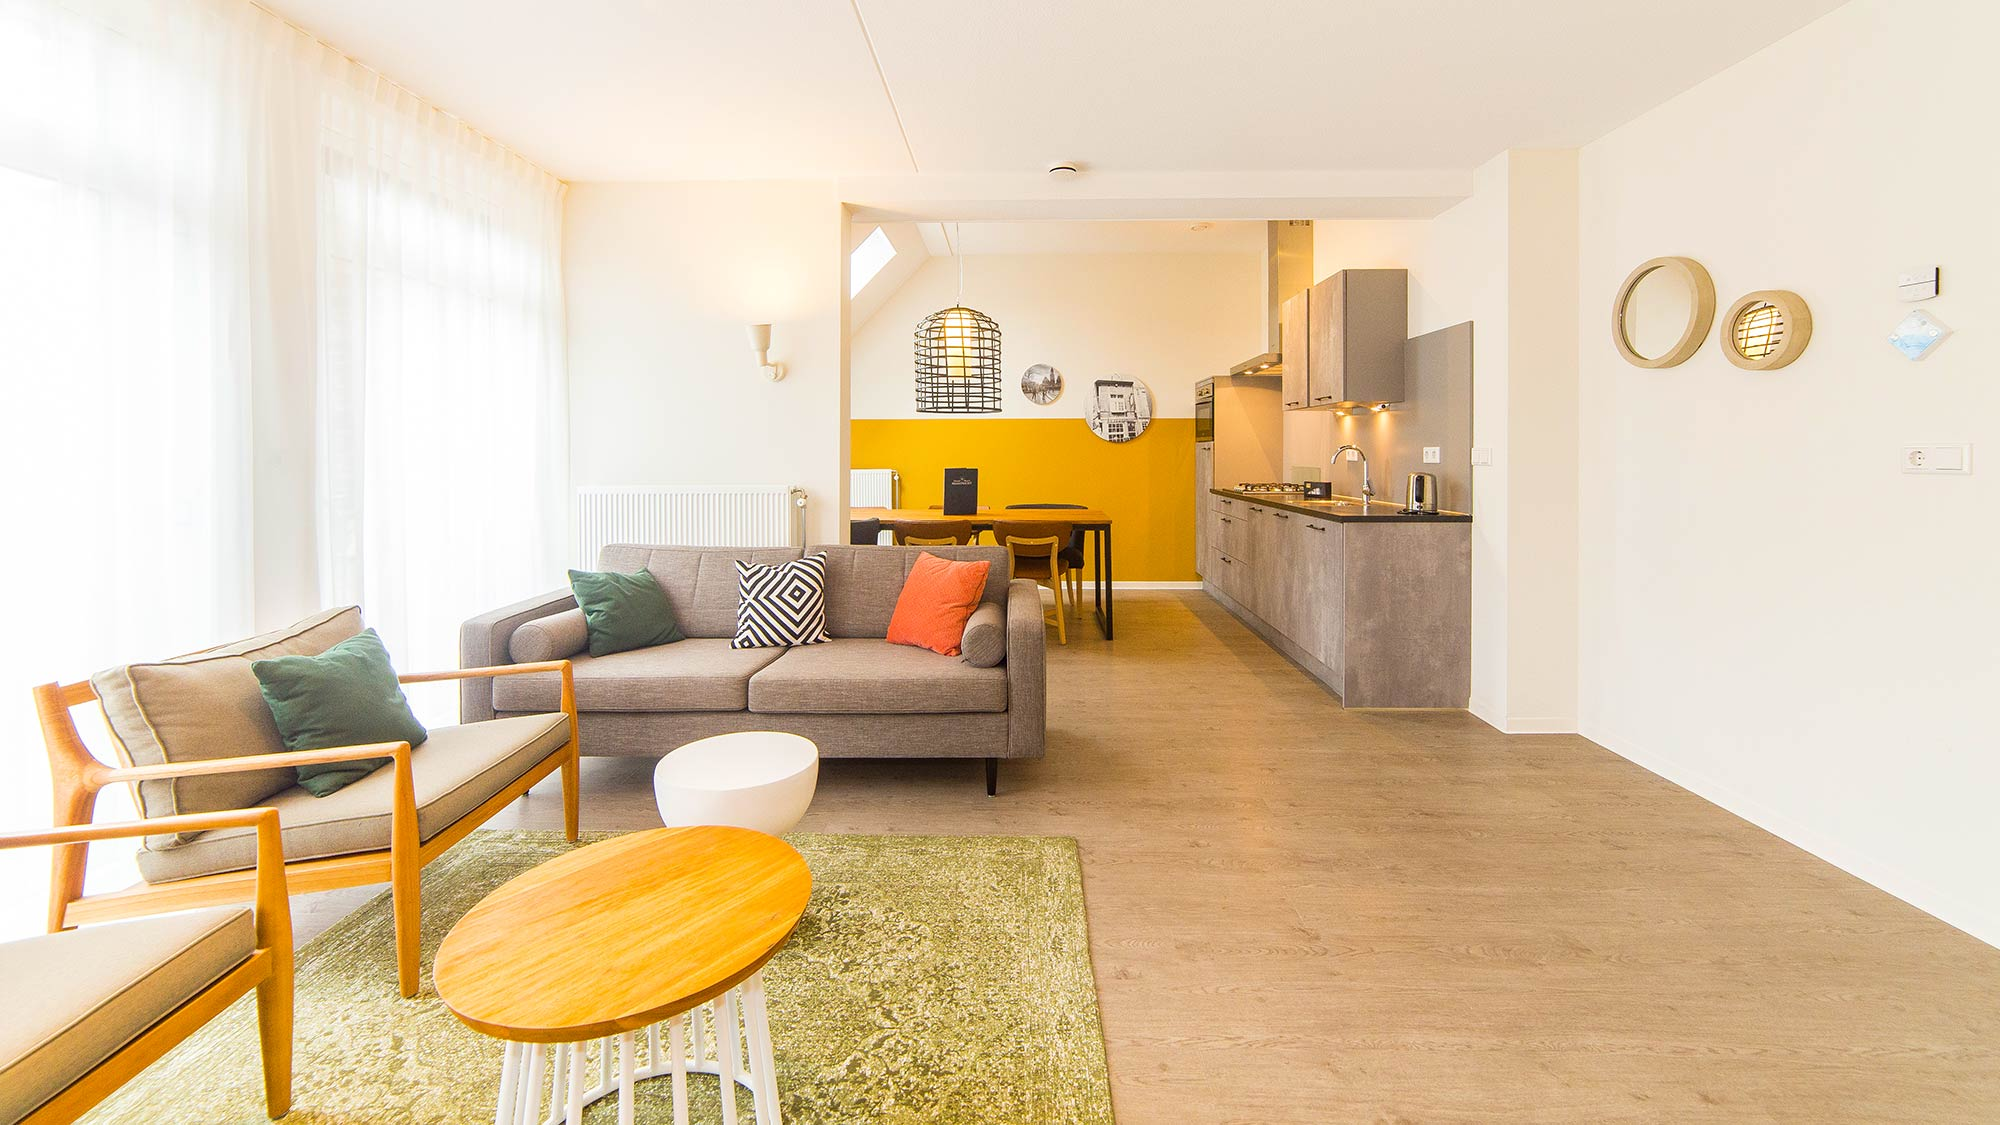 Appartement Lifestyle 3 chambres